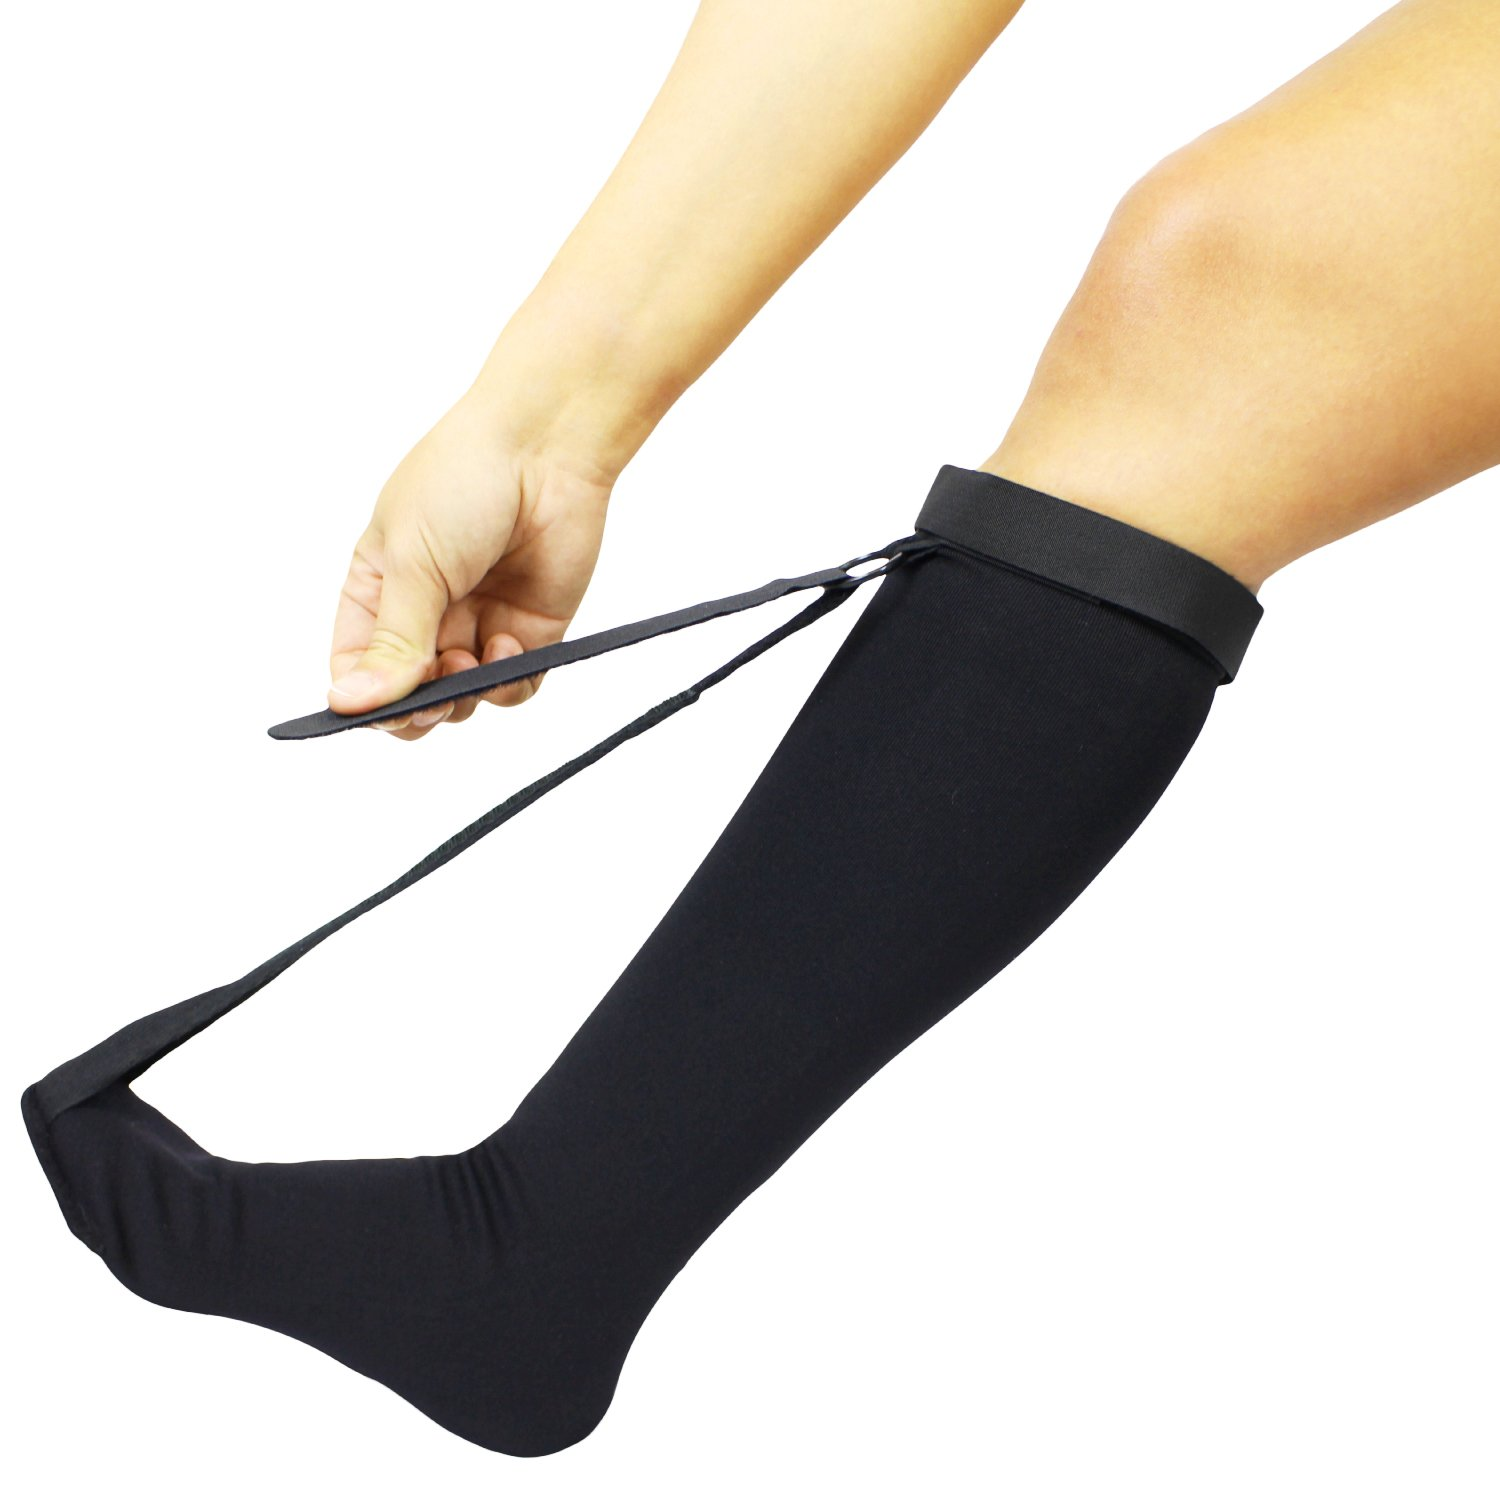 ef847a9d55 Amazon.com: Plantar Fasciitis Sock by Vive - Night Sock for Achilles  Tendonitis & Heel Pain Relief - Support Stretch Therapy: Health & Personal  Care